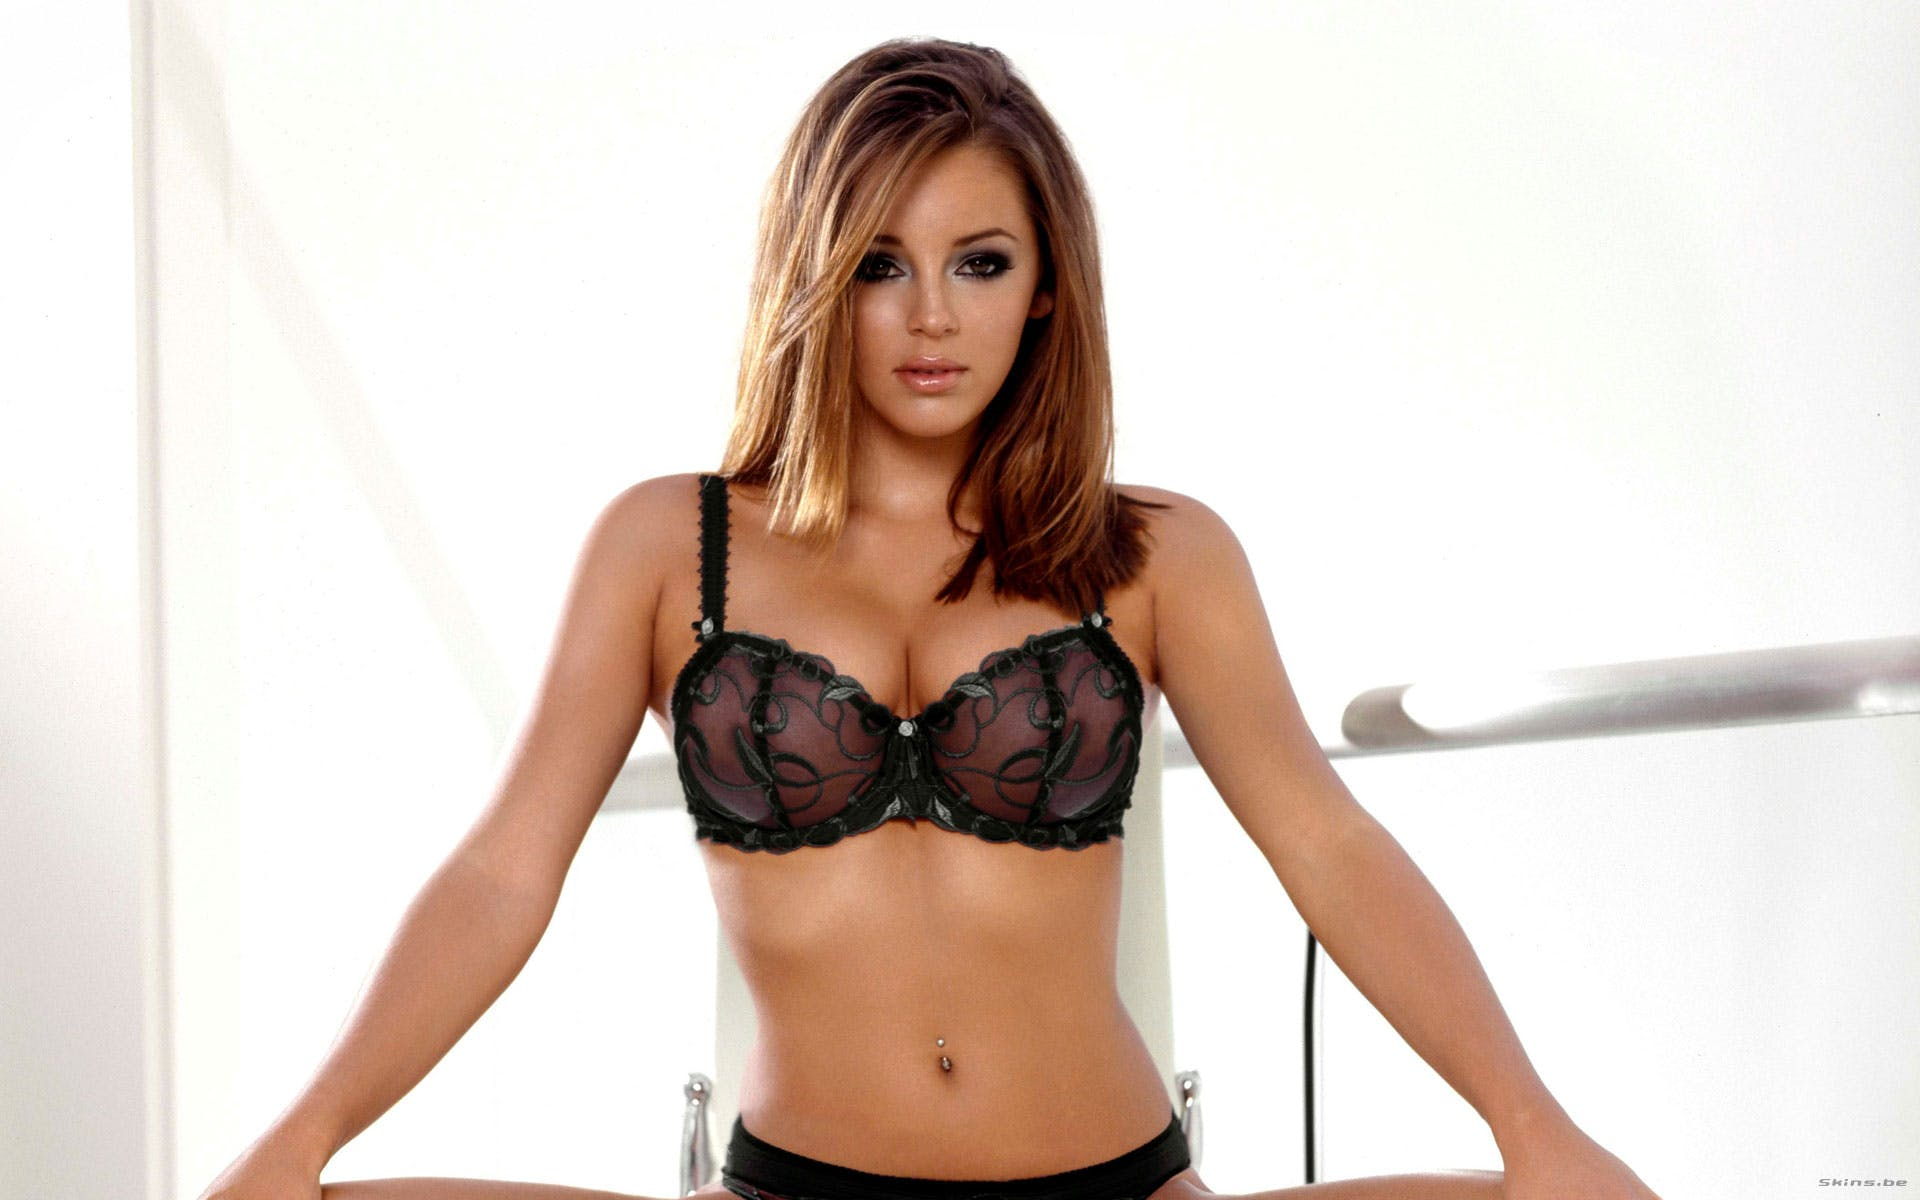 cdc7c8e2a9 These Are Sexiest Lingerie Models Of All Time